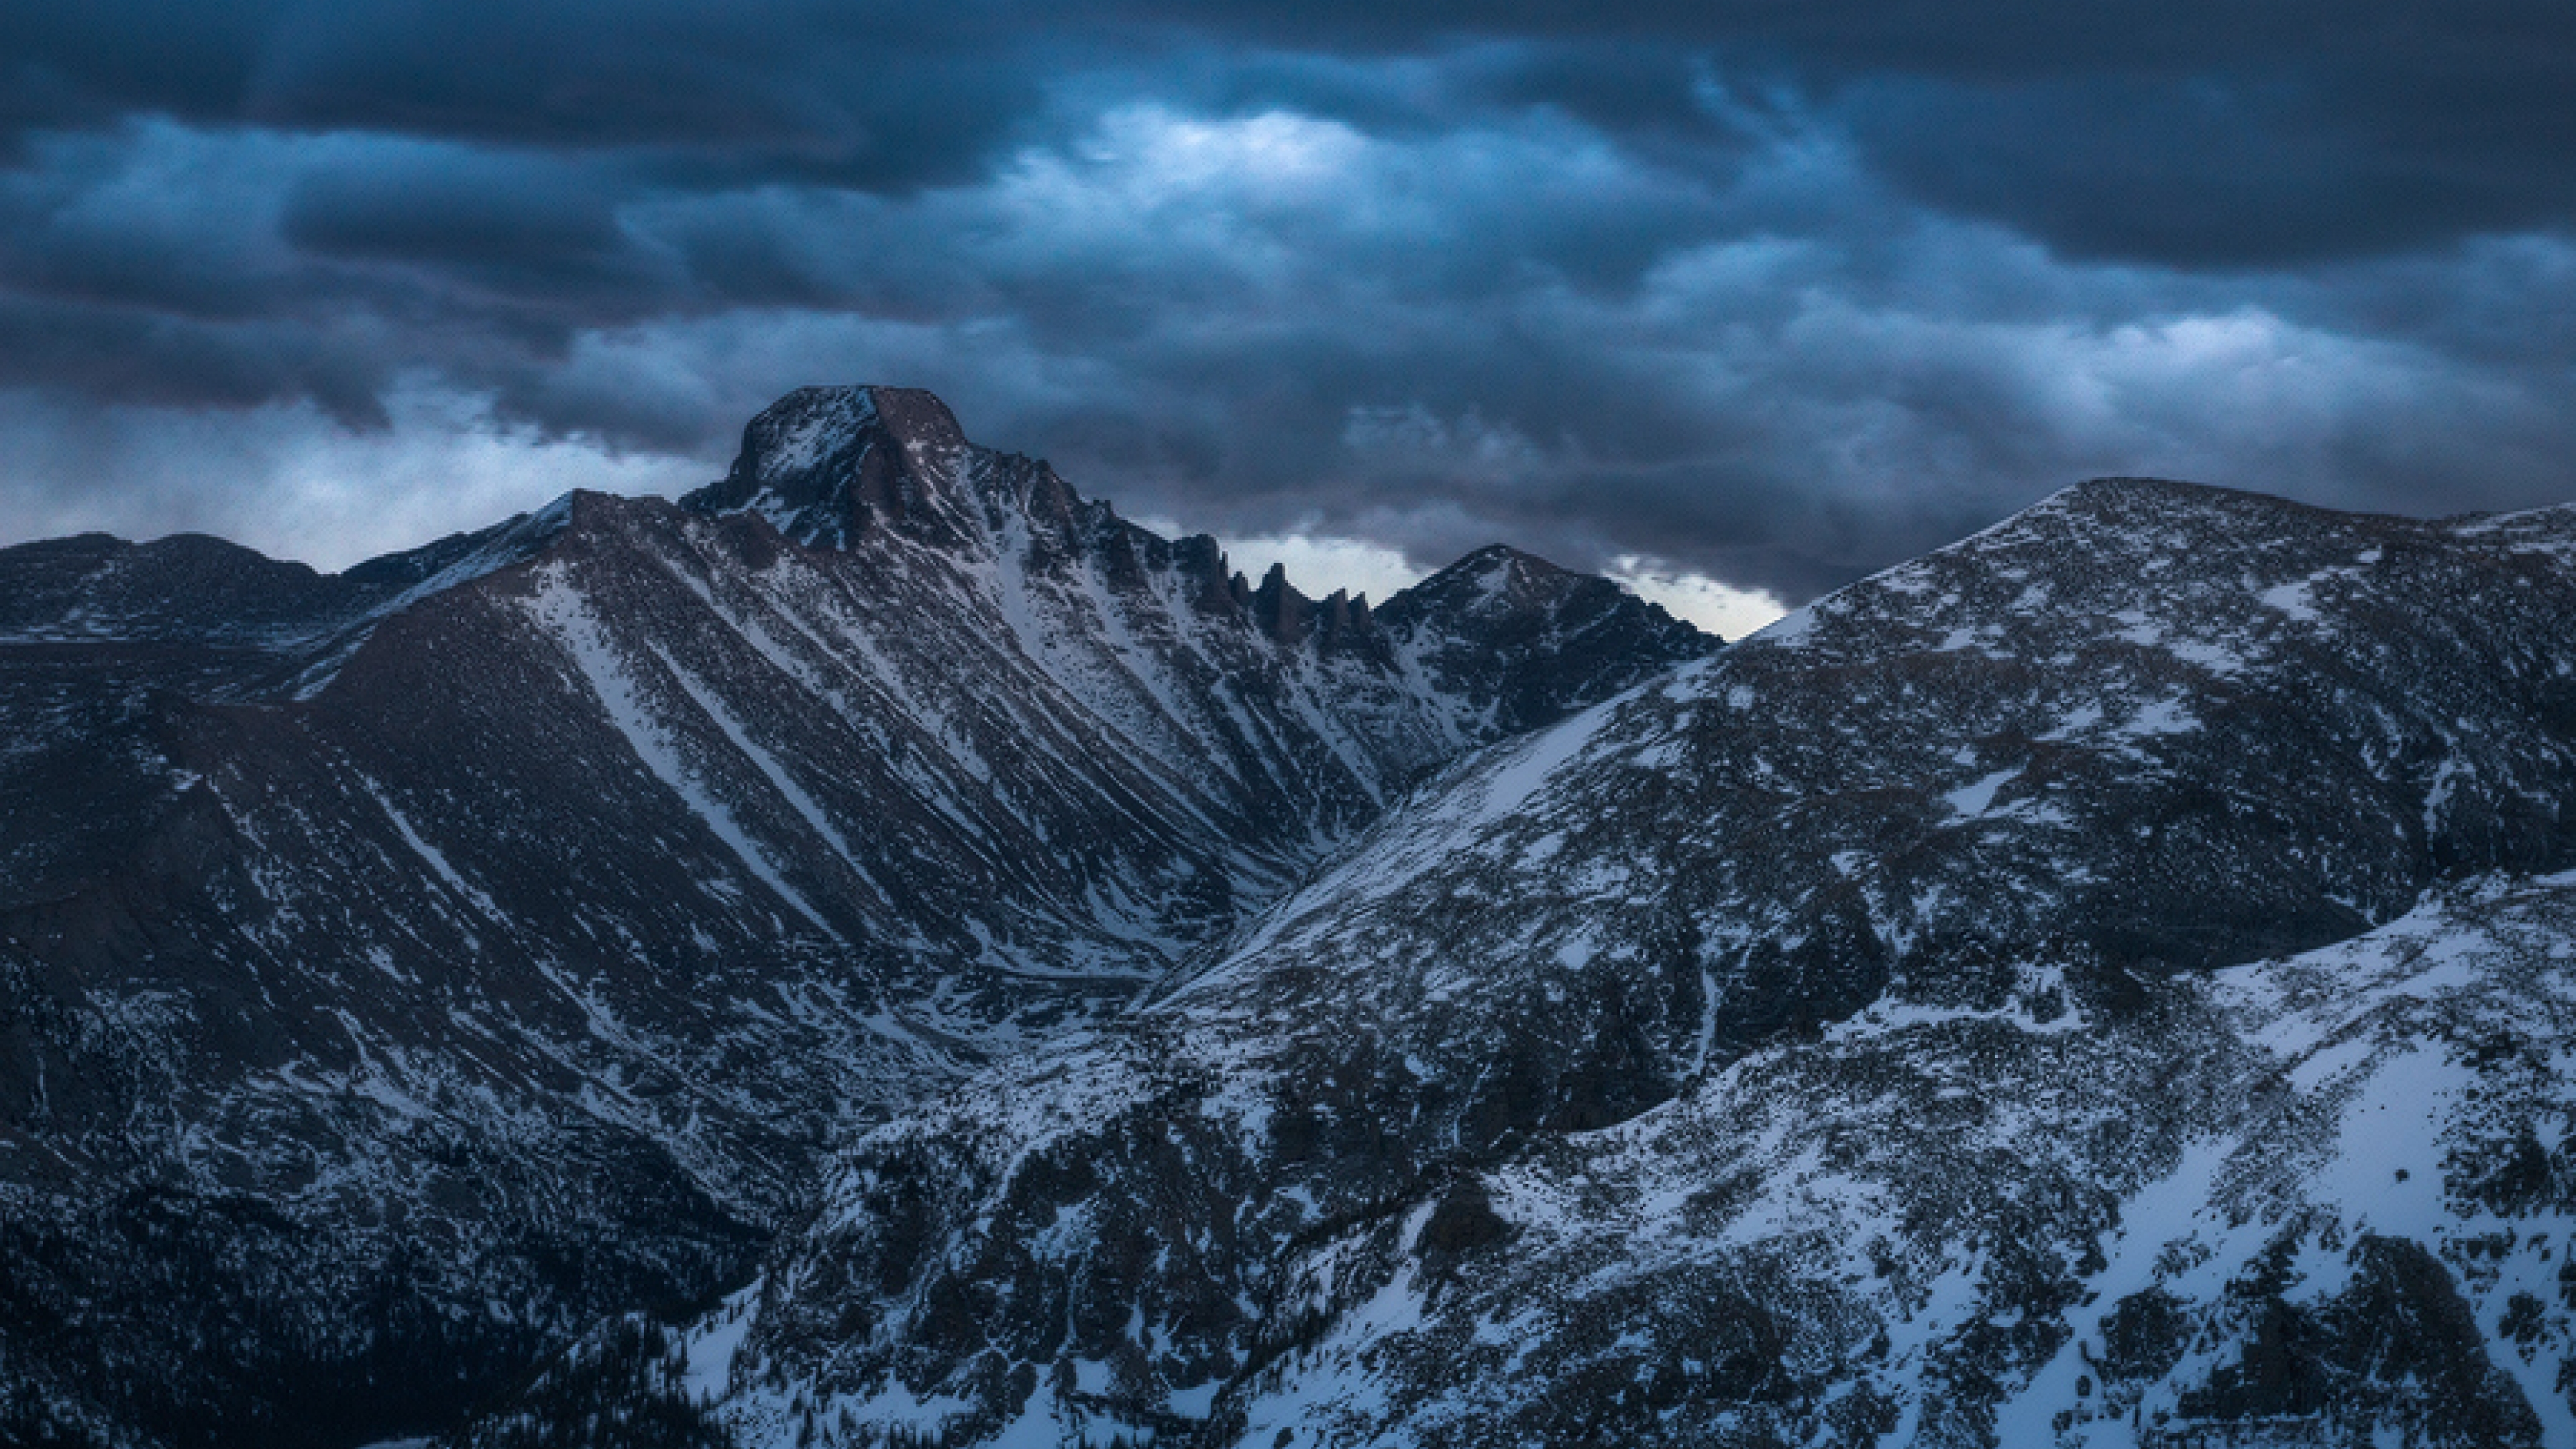 Ominous photo of Rocky Mountains in winter with snow and a dark, blue night sky